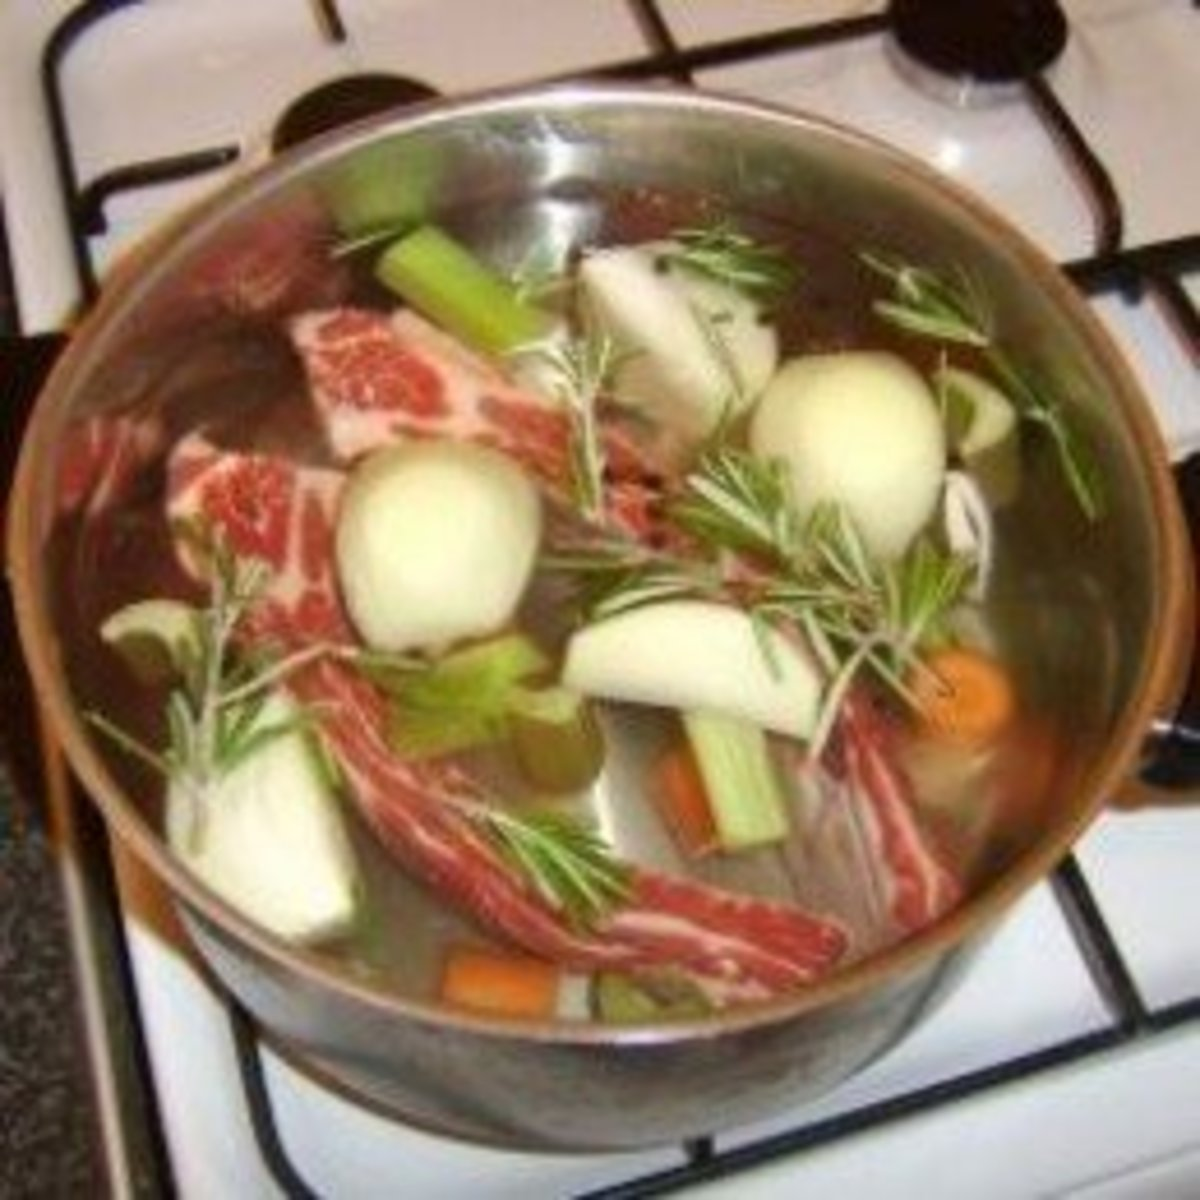 How to Make Beef Stock or Broth